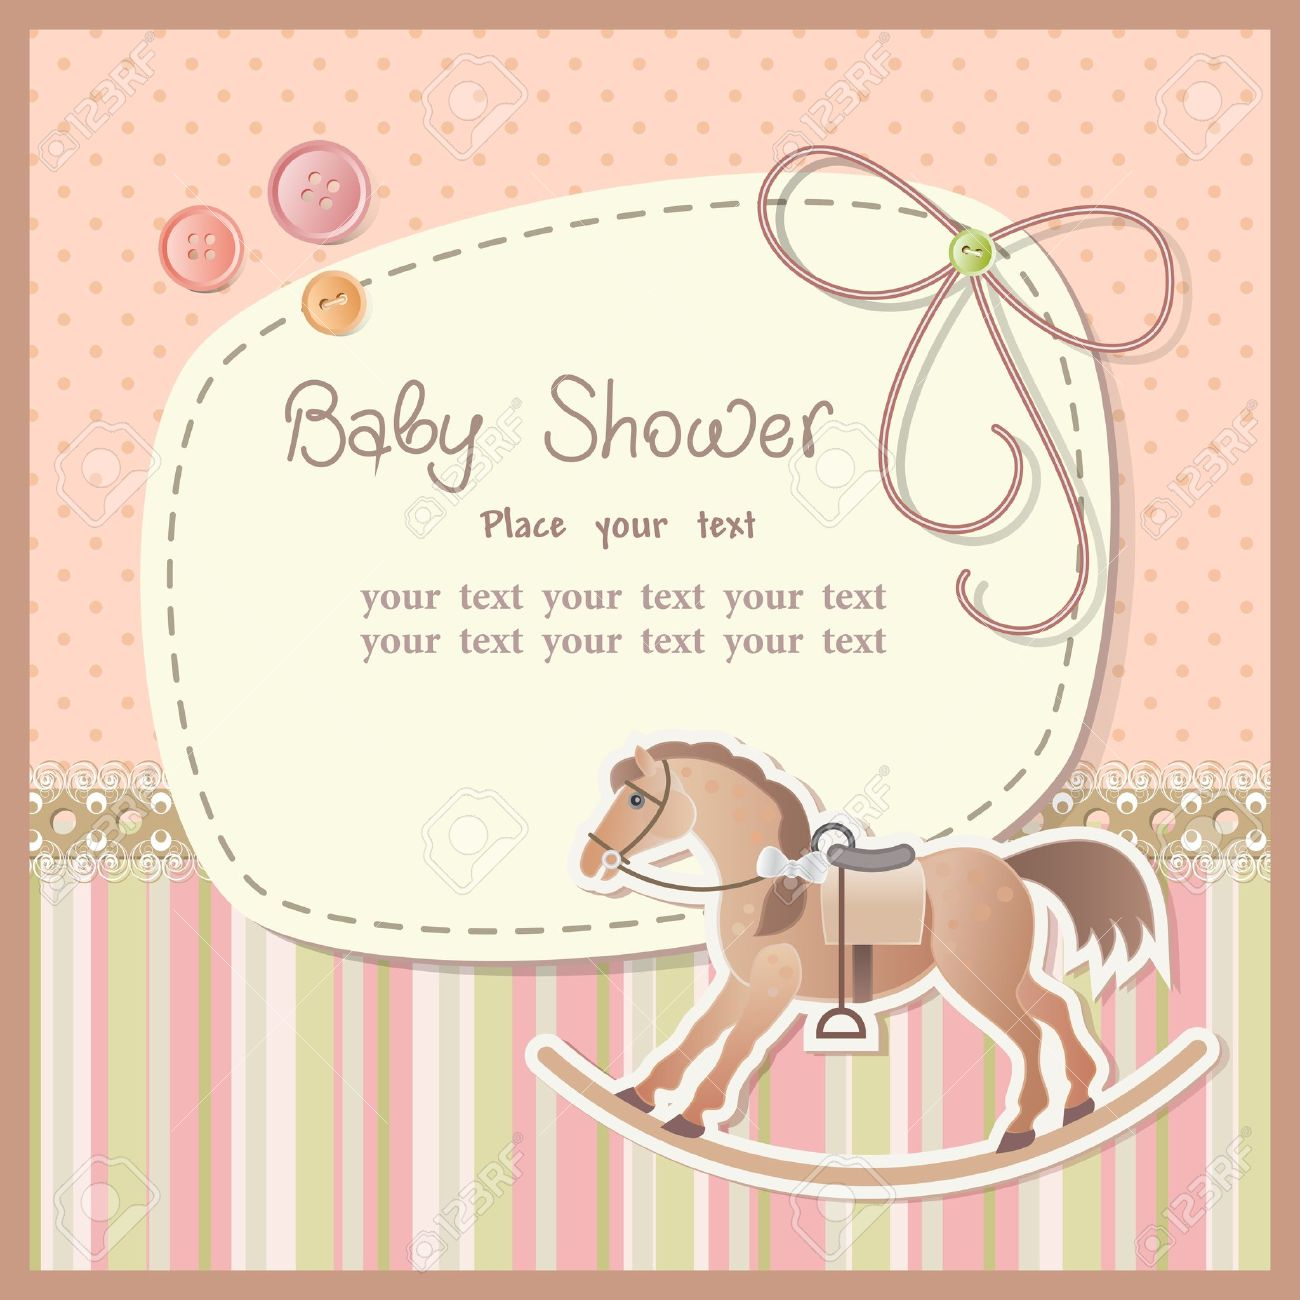 Baby shower for boy with scrapbook elements Stock Vector - 13143453